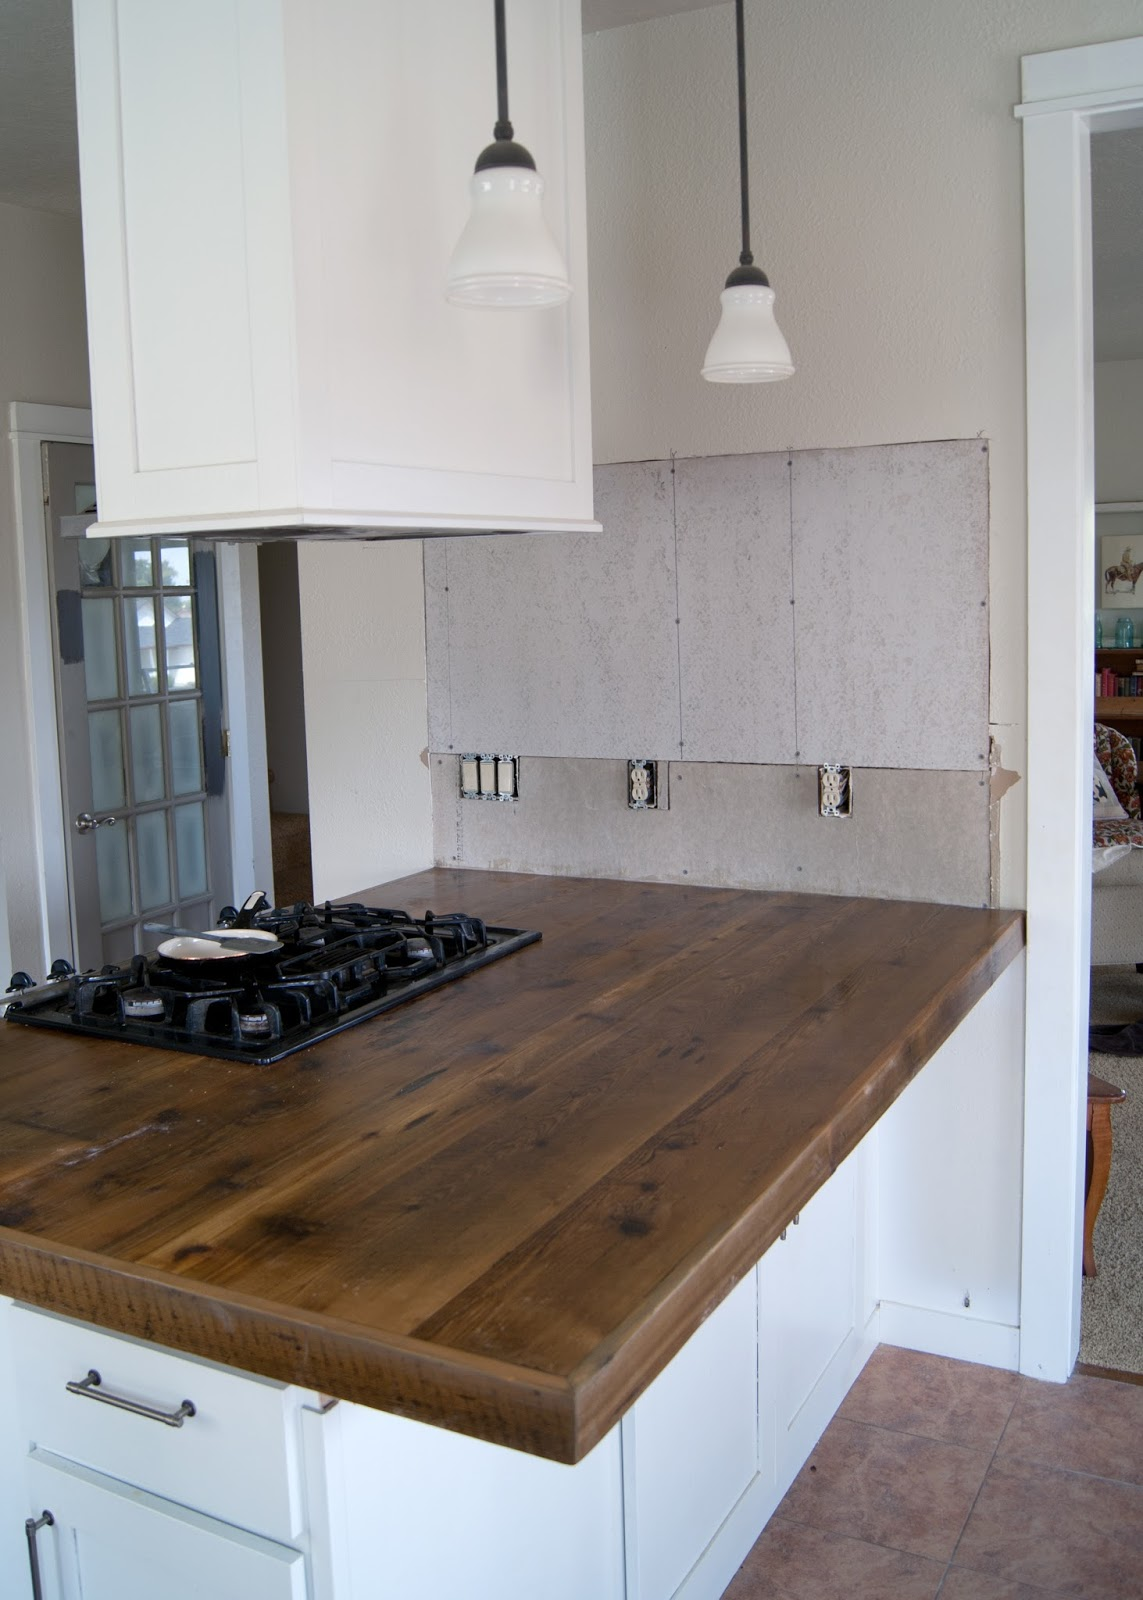 Reclaimed Wood Countertops diy reclaimed wood countertop | averie lane: diy reclaimed wood